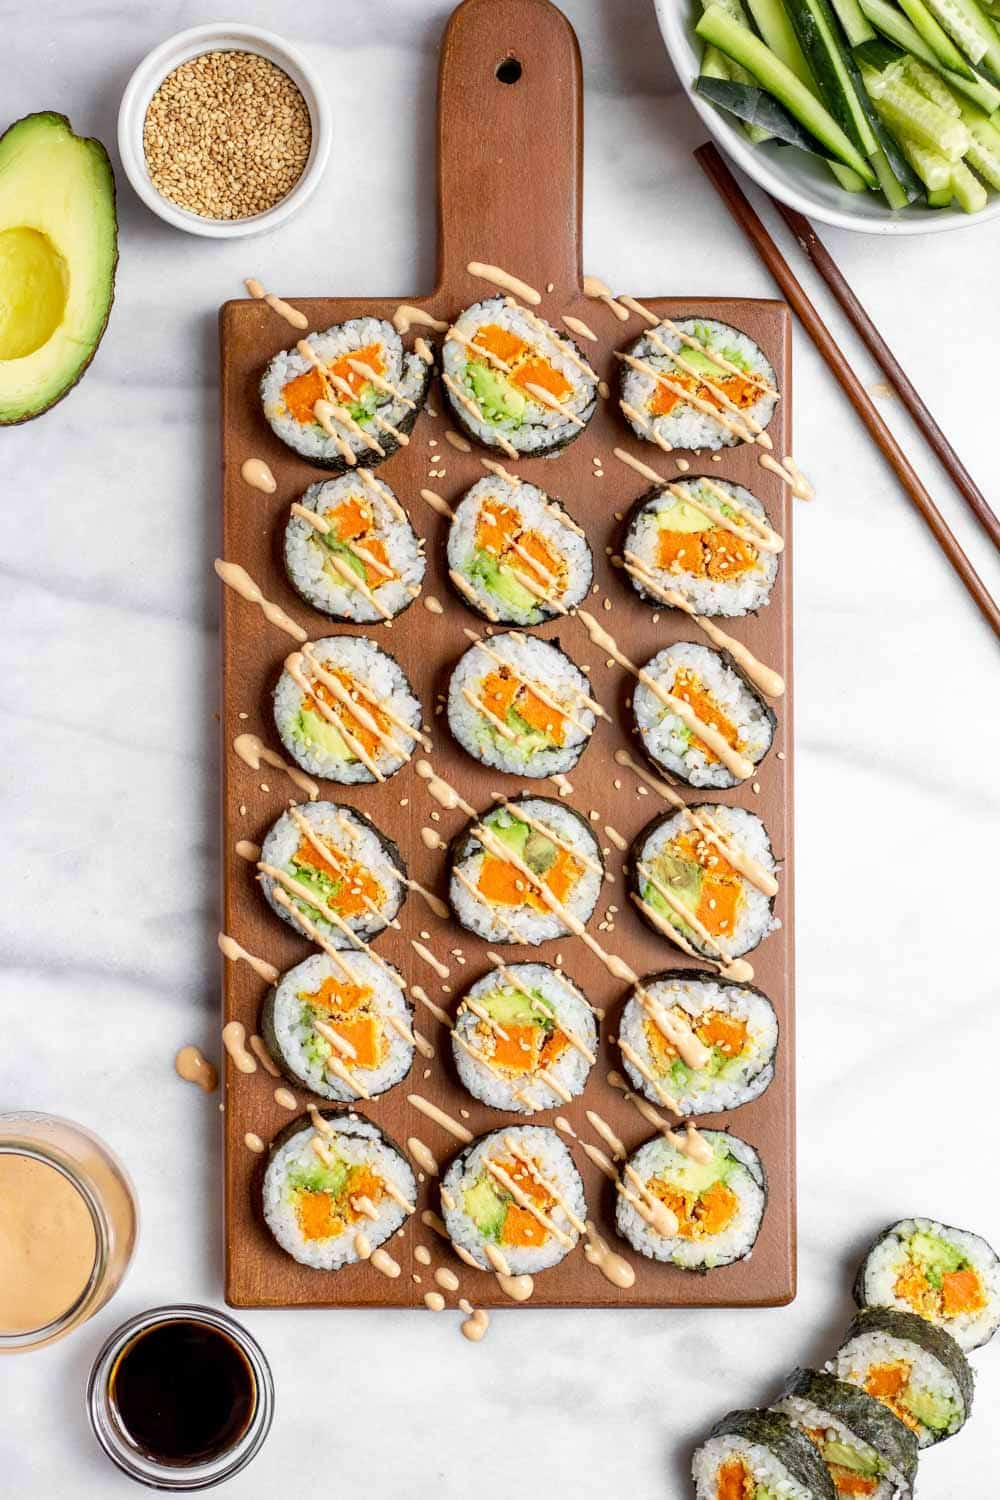 Vegetarian sushi recipe with sweet potato on a wood board.